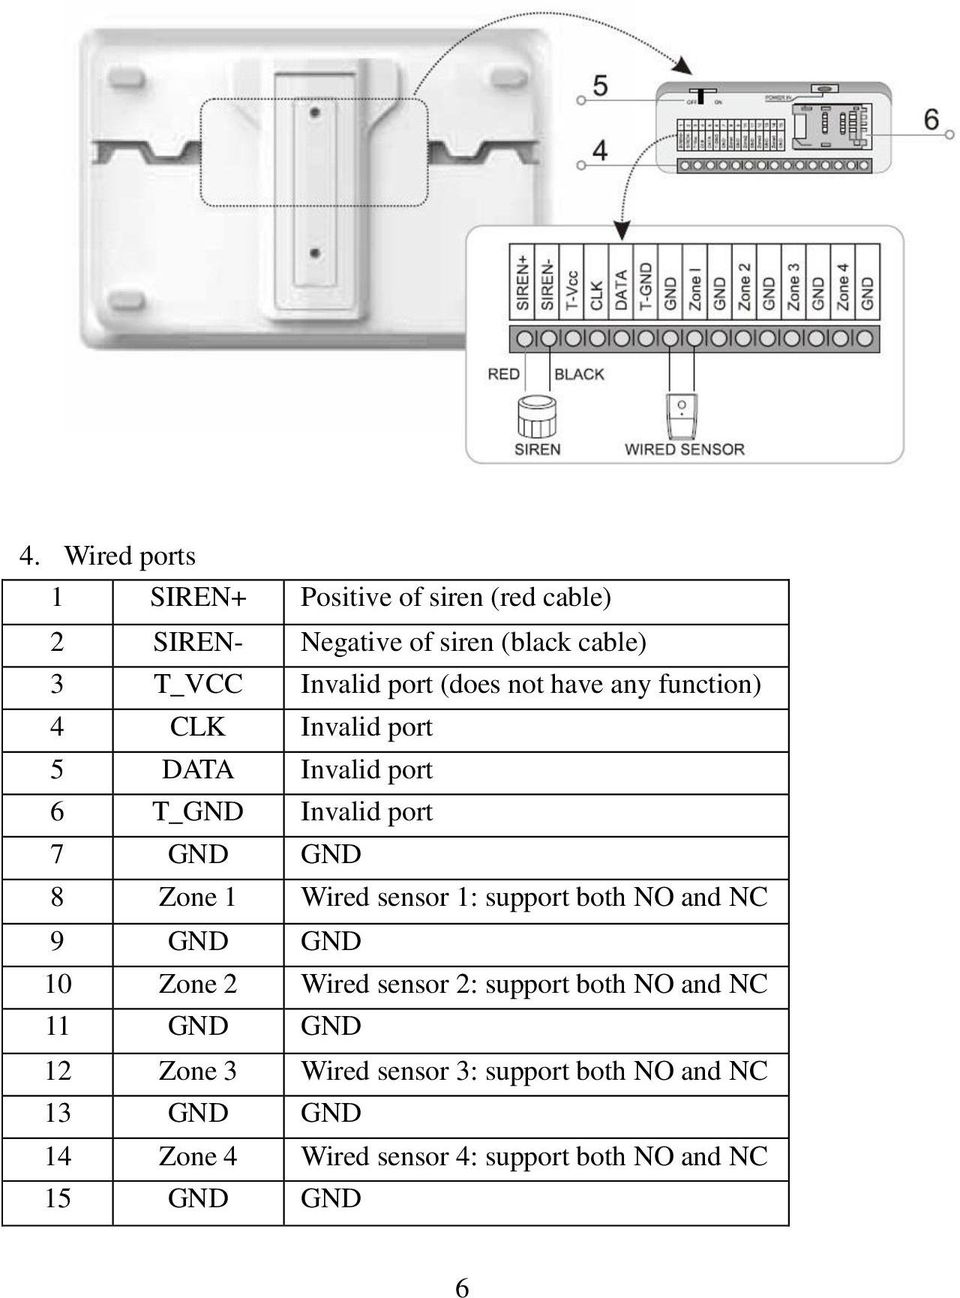 Wired sensor 1: support both NO and NC 9 GND GND 10 Zone 2 Wired sensor 2: support both NO and NC 11 GND GND 12